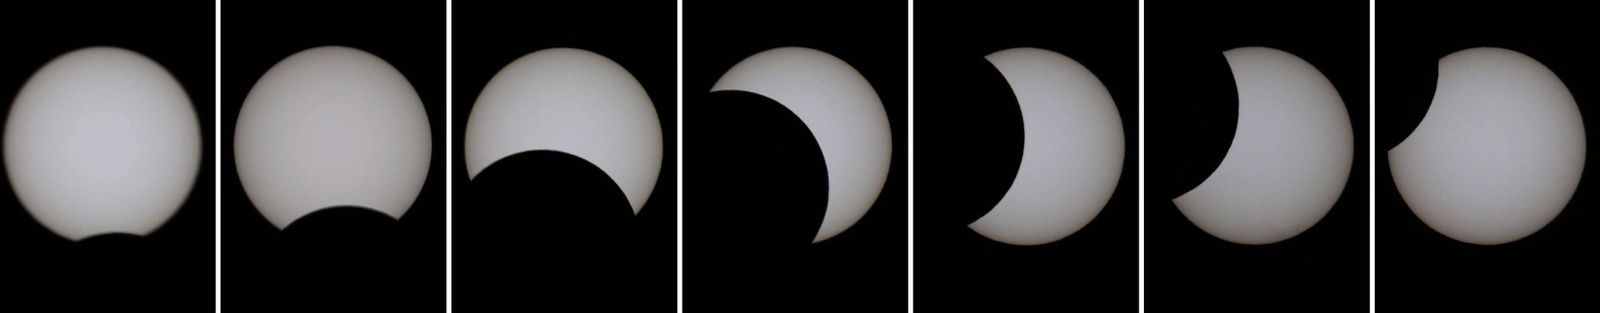 Partial solar eclipse observed in Japan Composite photo shows a partial solar eclipse seen from Fukuoka, southwestern J